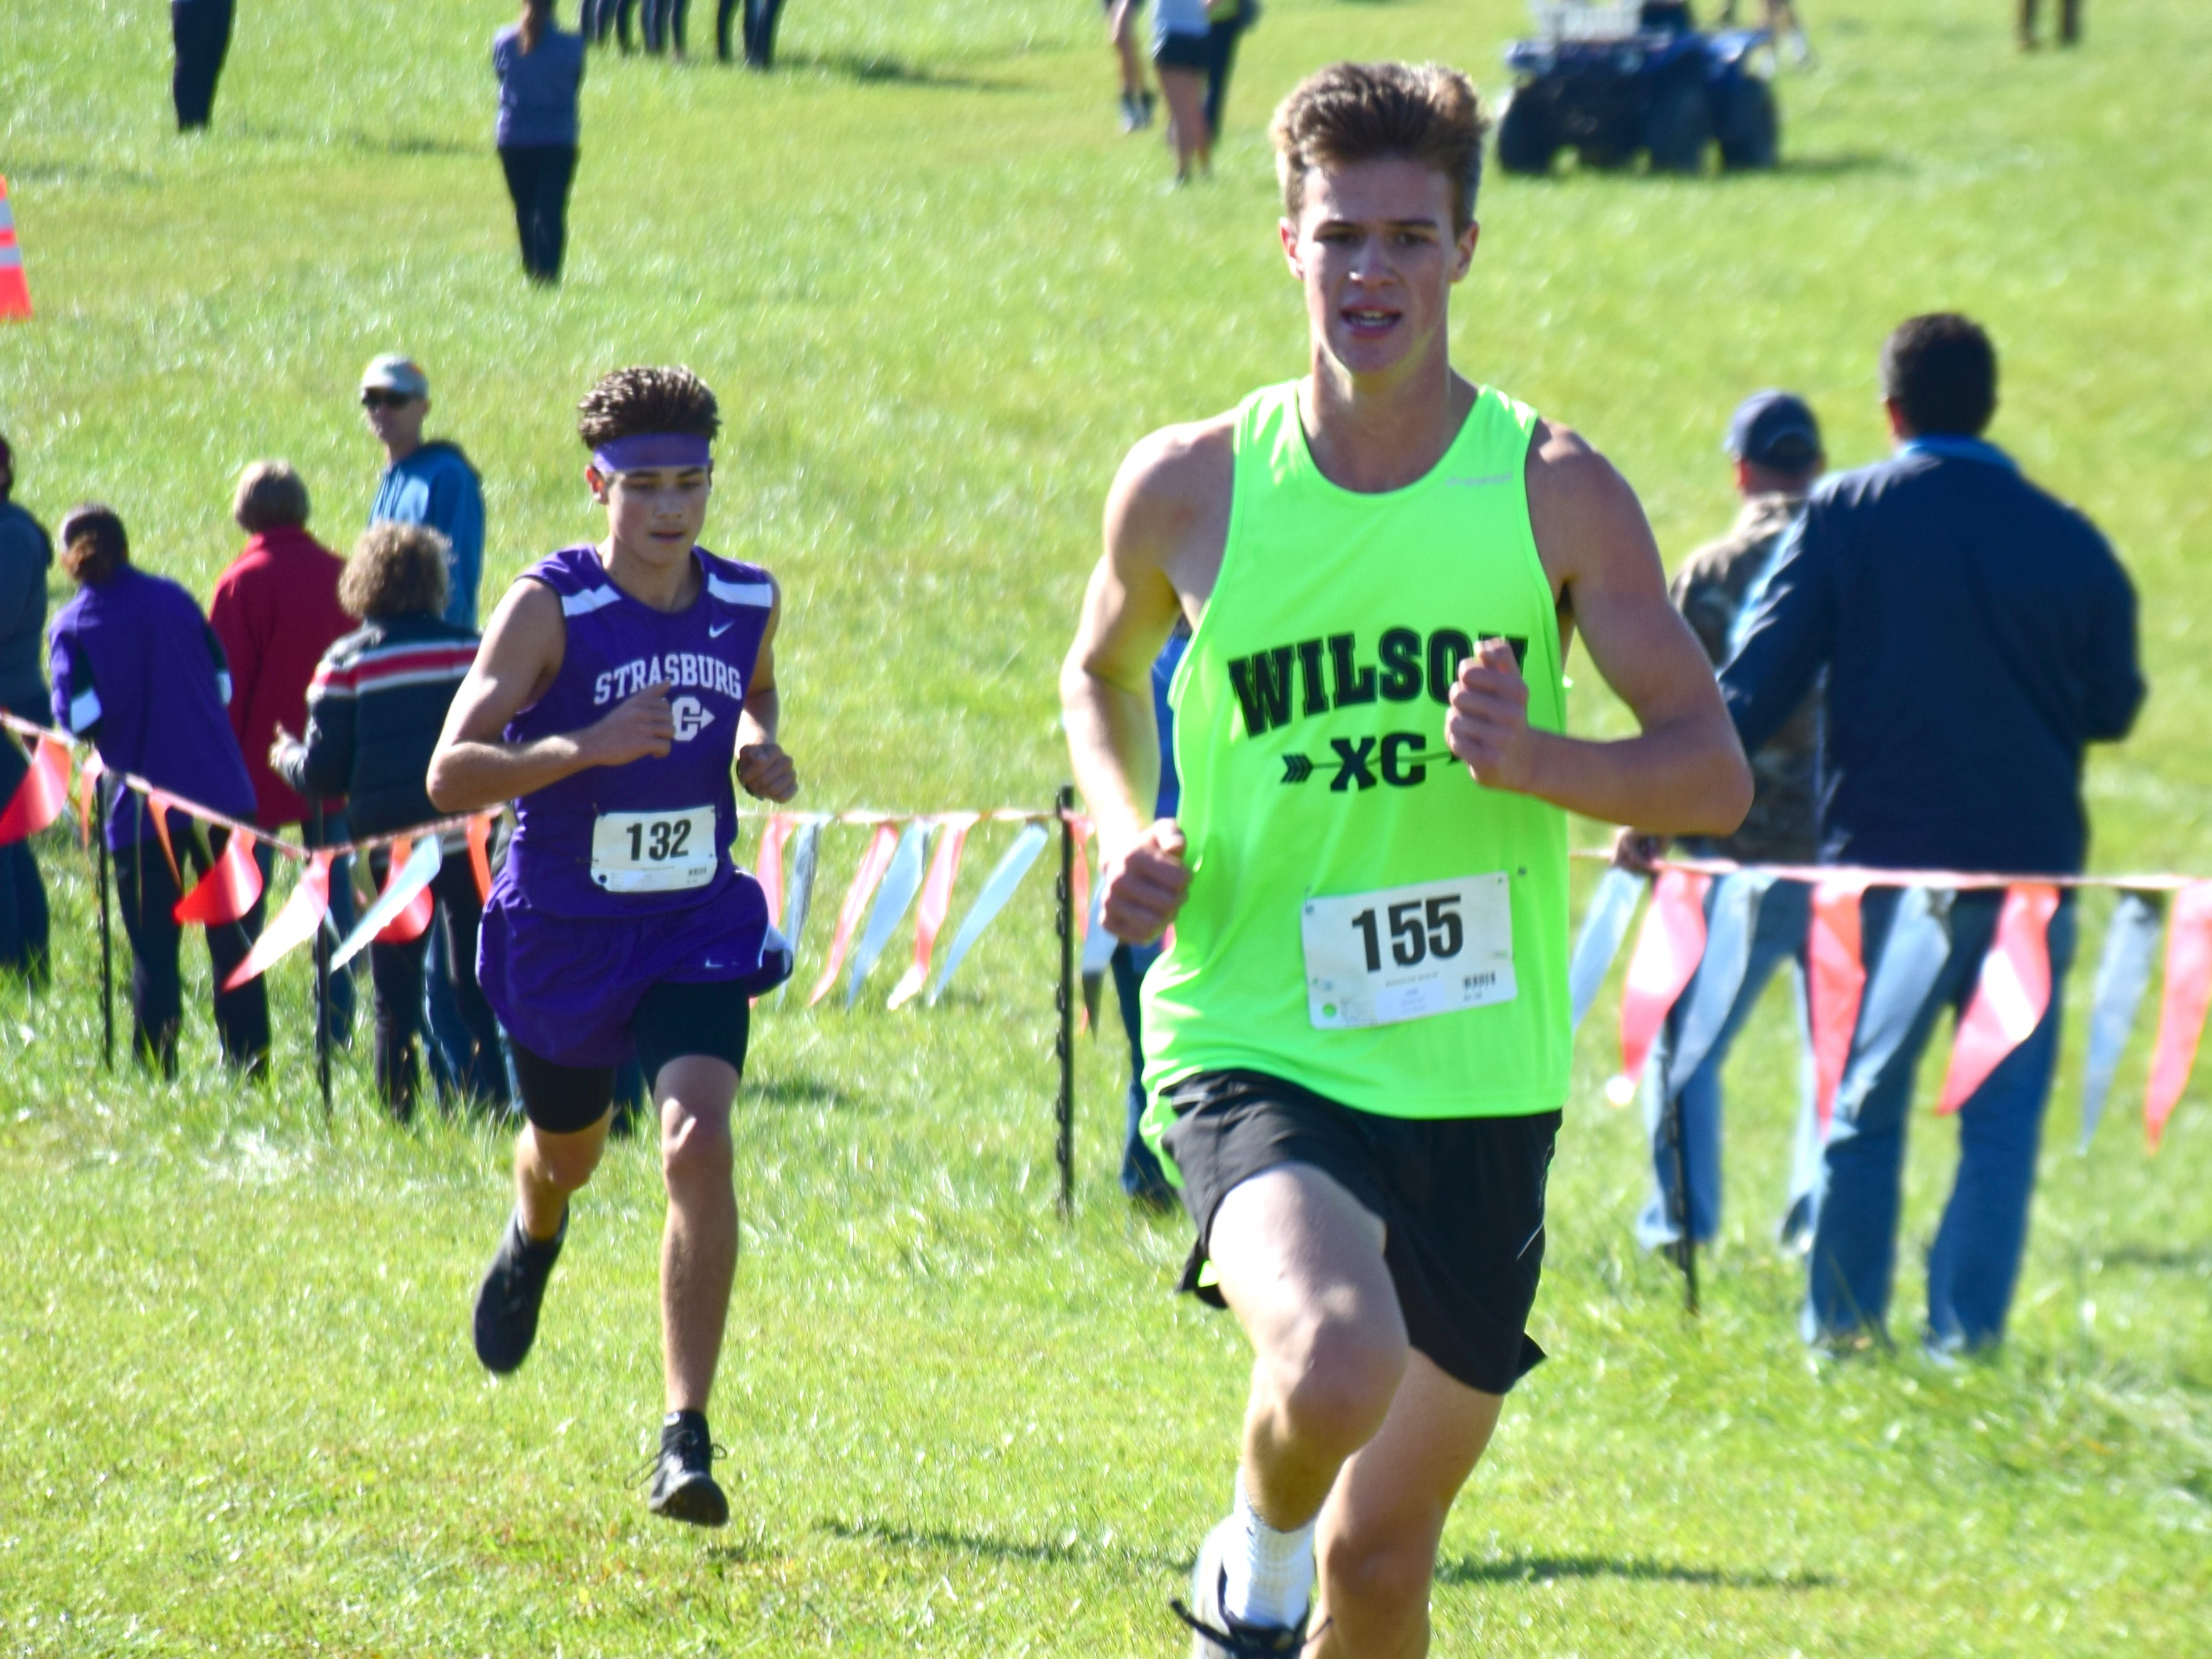 Wilson Memorial's Rafe Shumate approaches the finish line of the boys race at the VHSL Class 2, Region B Cross Country Championships on Tuesday, Oct. 30, 2018, at New Market Battlefield Park in New Market, Va.